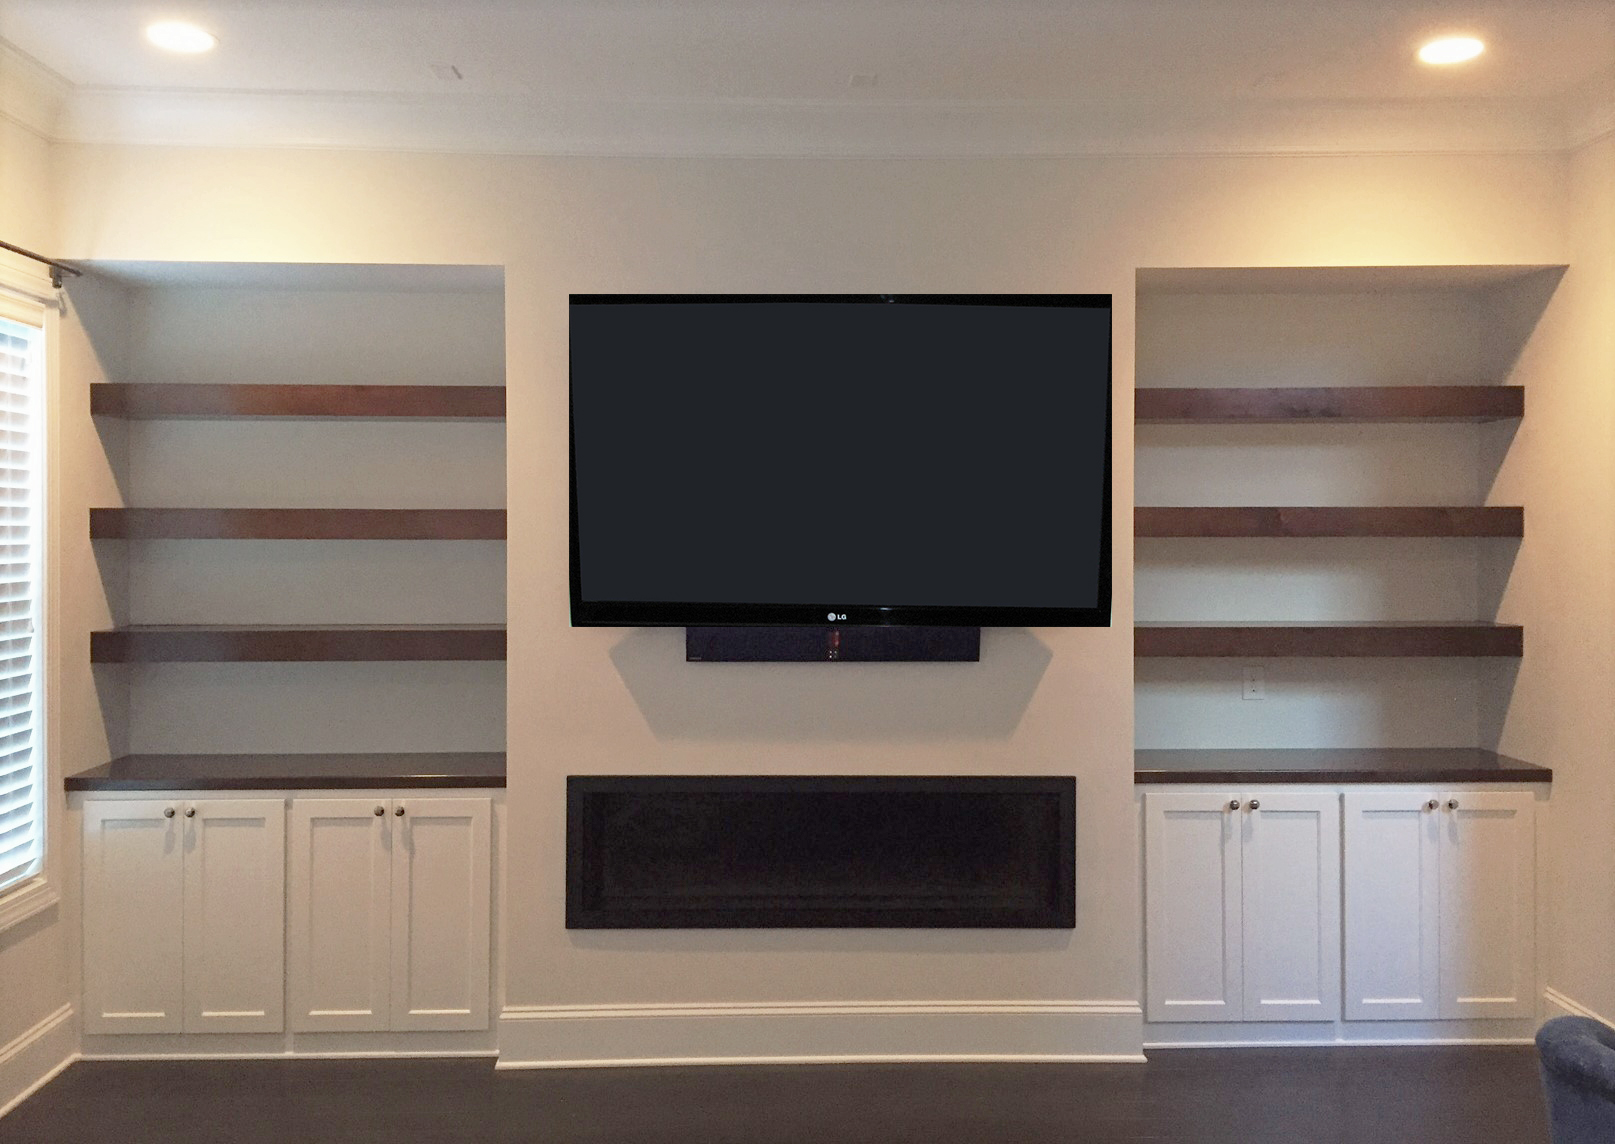 Fireplace Built-Ins with Shaker Doors, and Stain Floating Shelves & Countertops